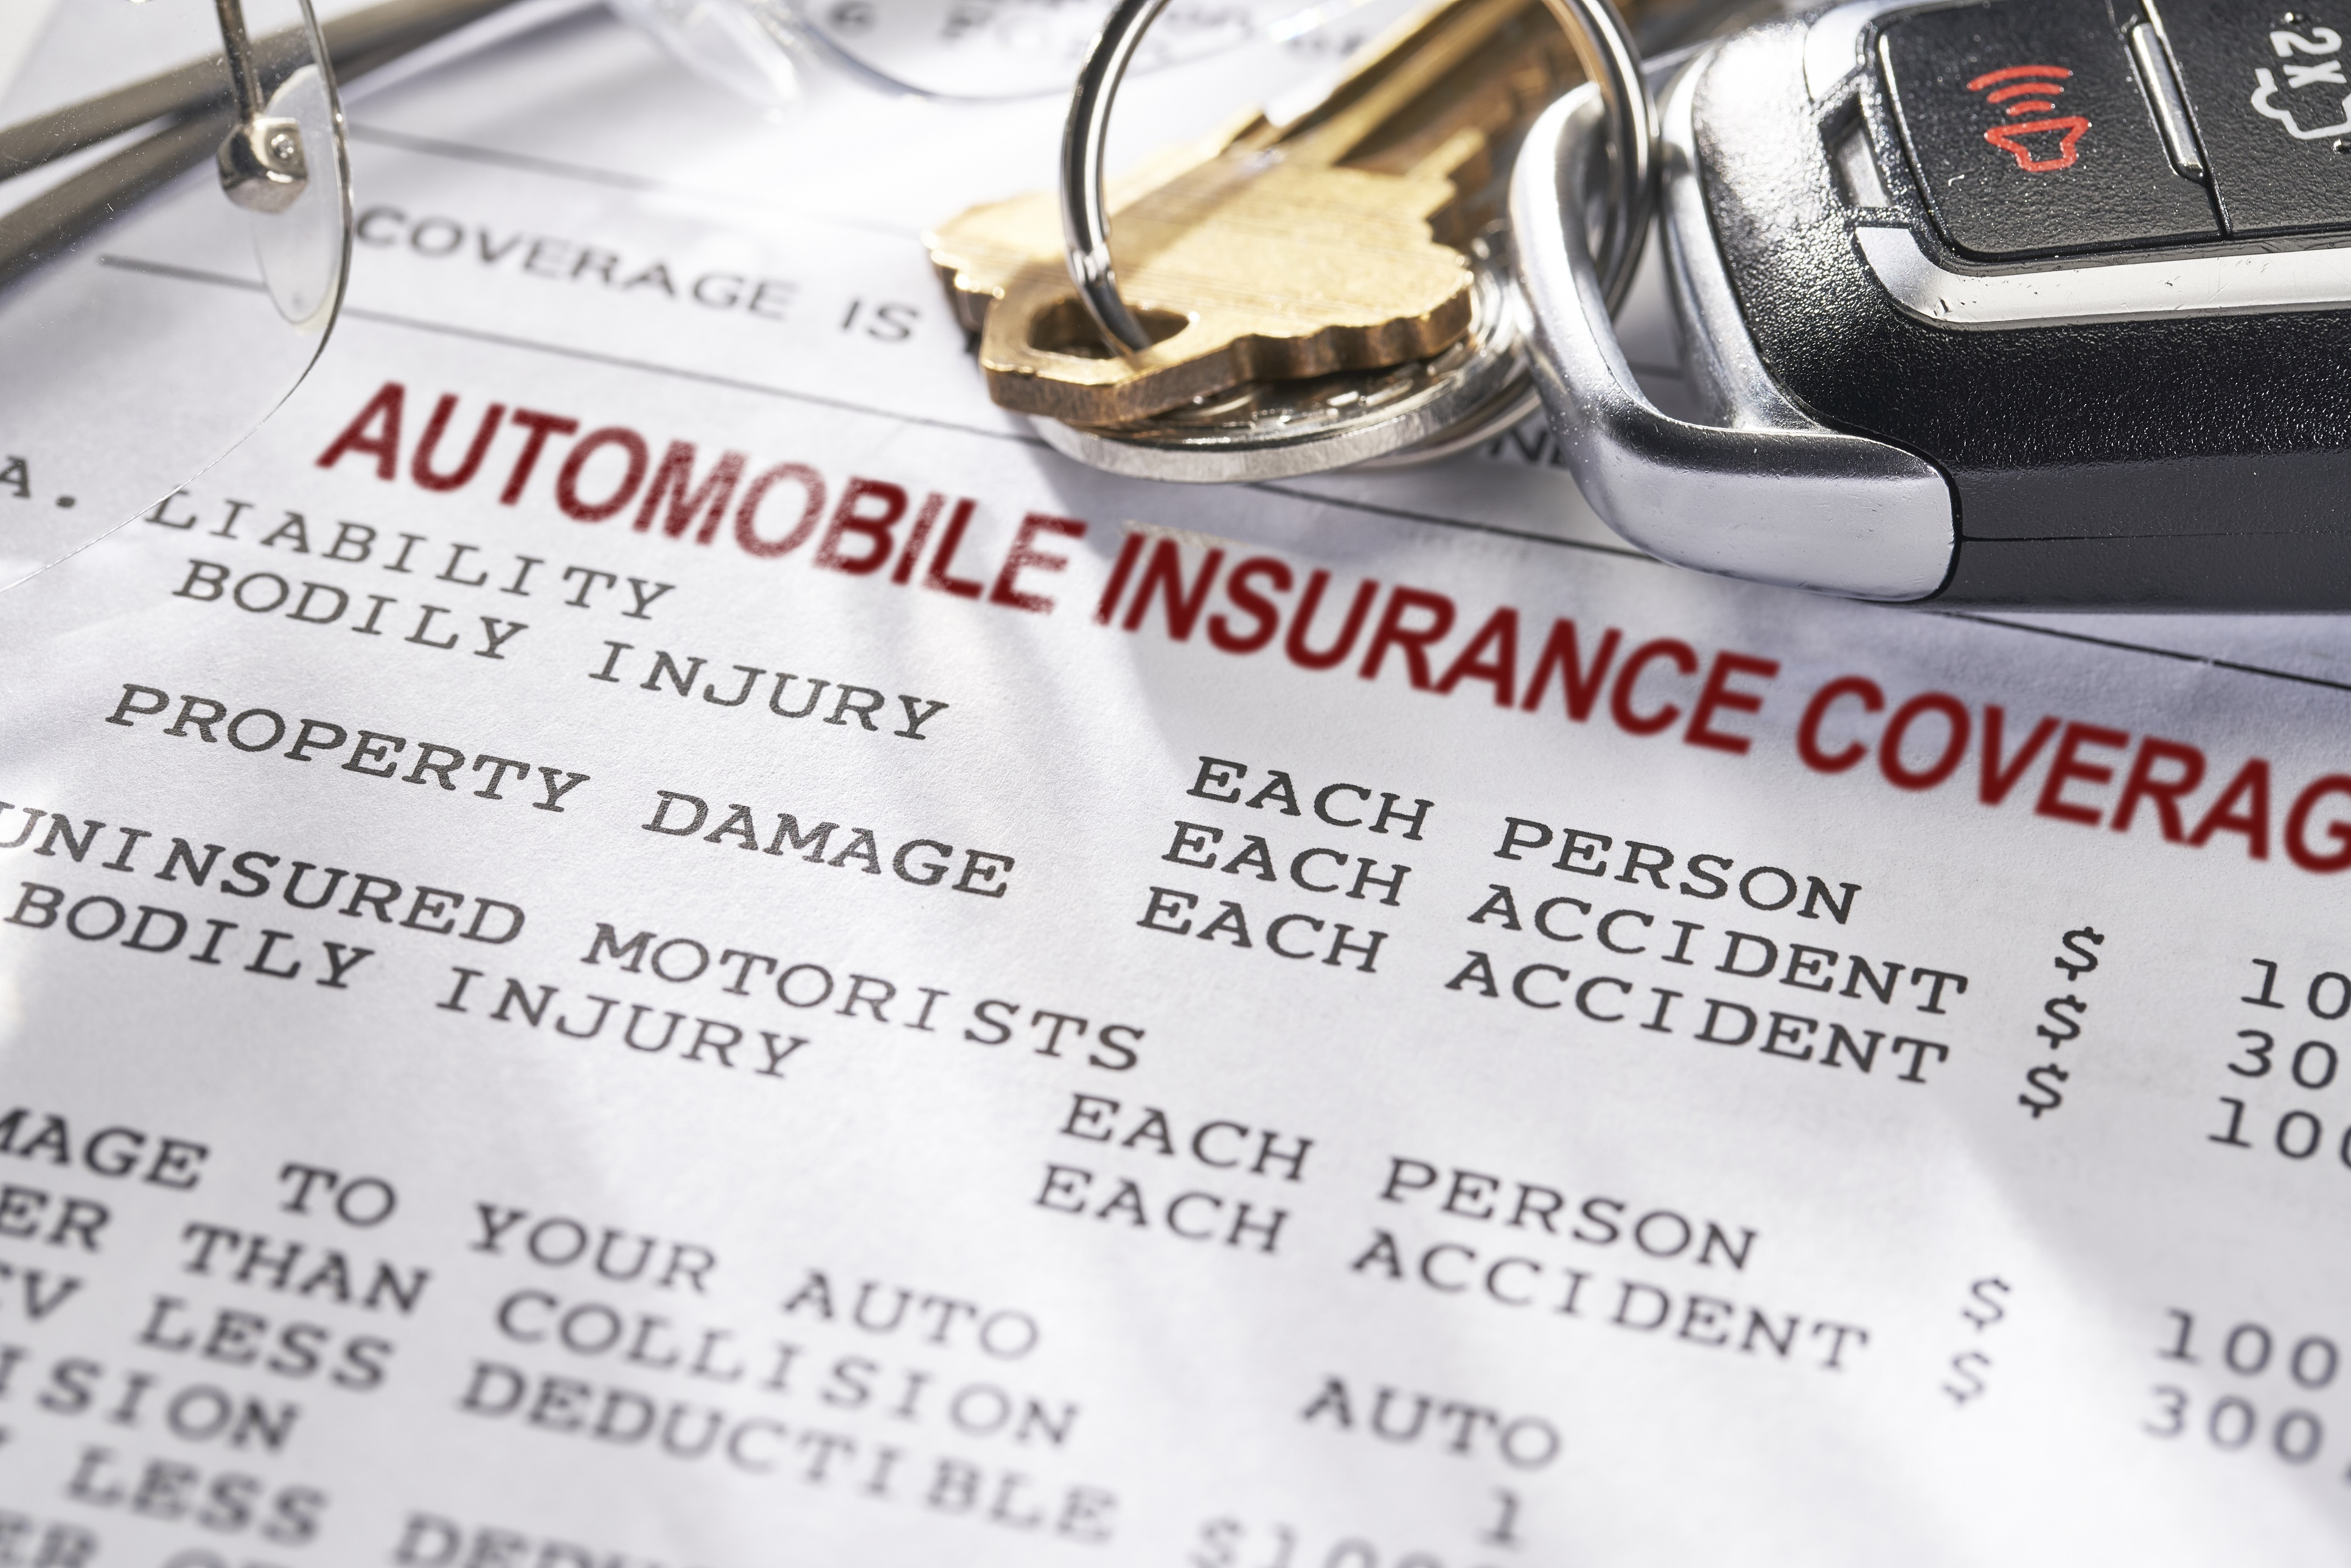 Lake City Law Firm Robinson Kennon Kendron P A High Cost Of Florida Car Insurance Leaves Many Underinsured